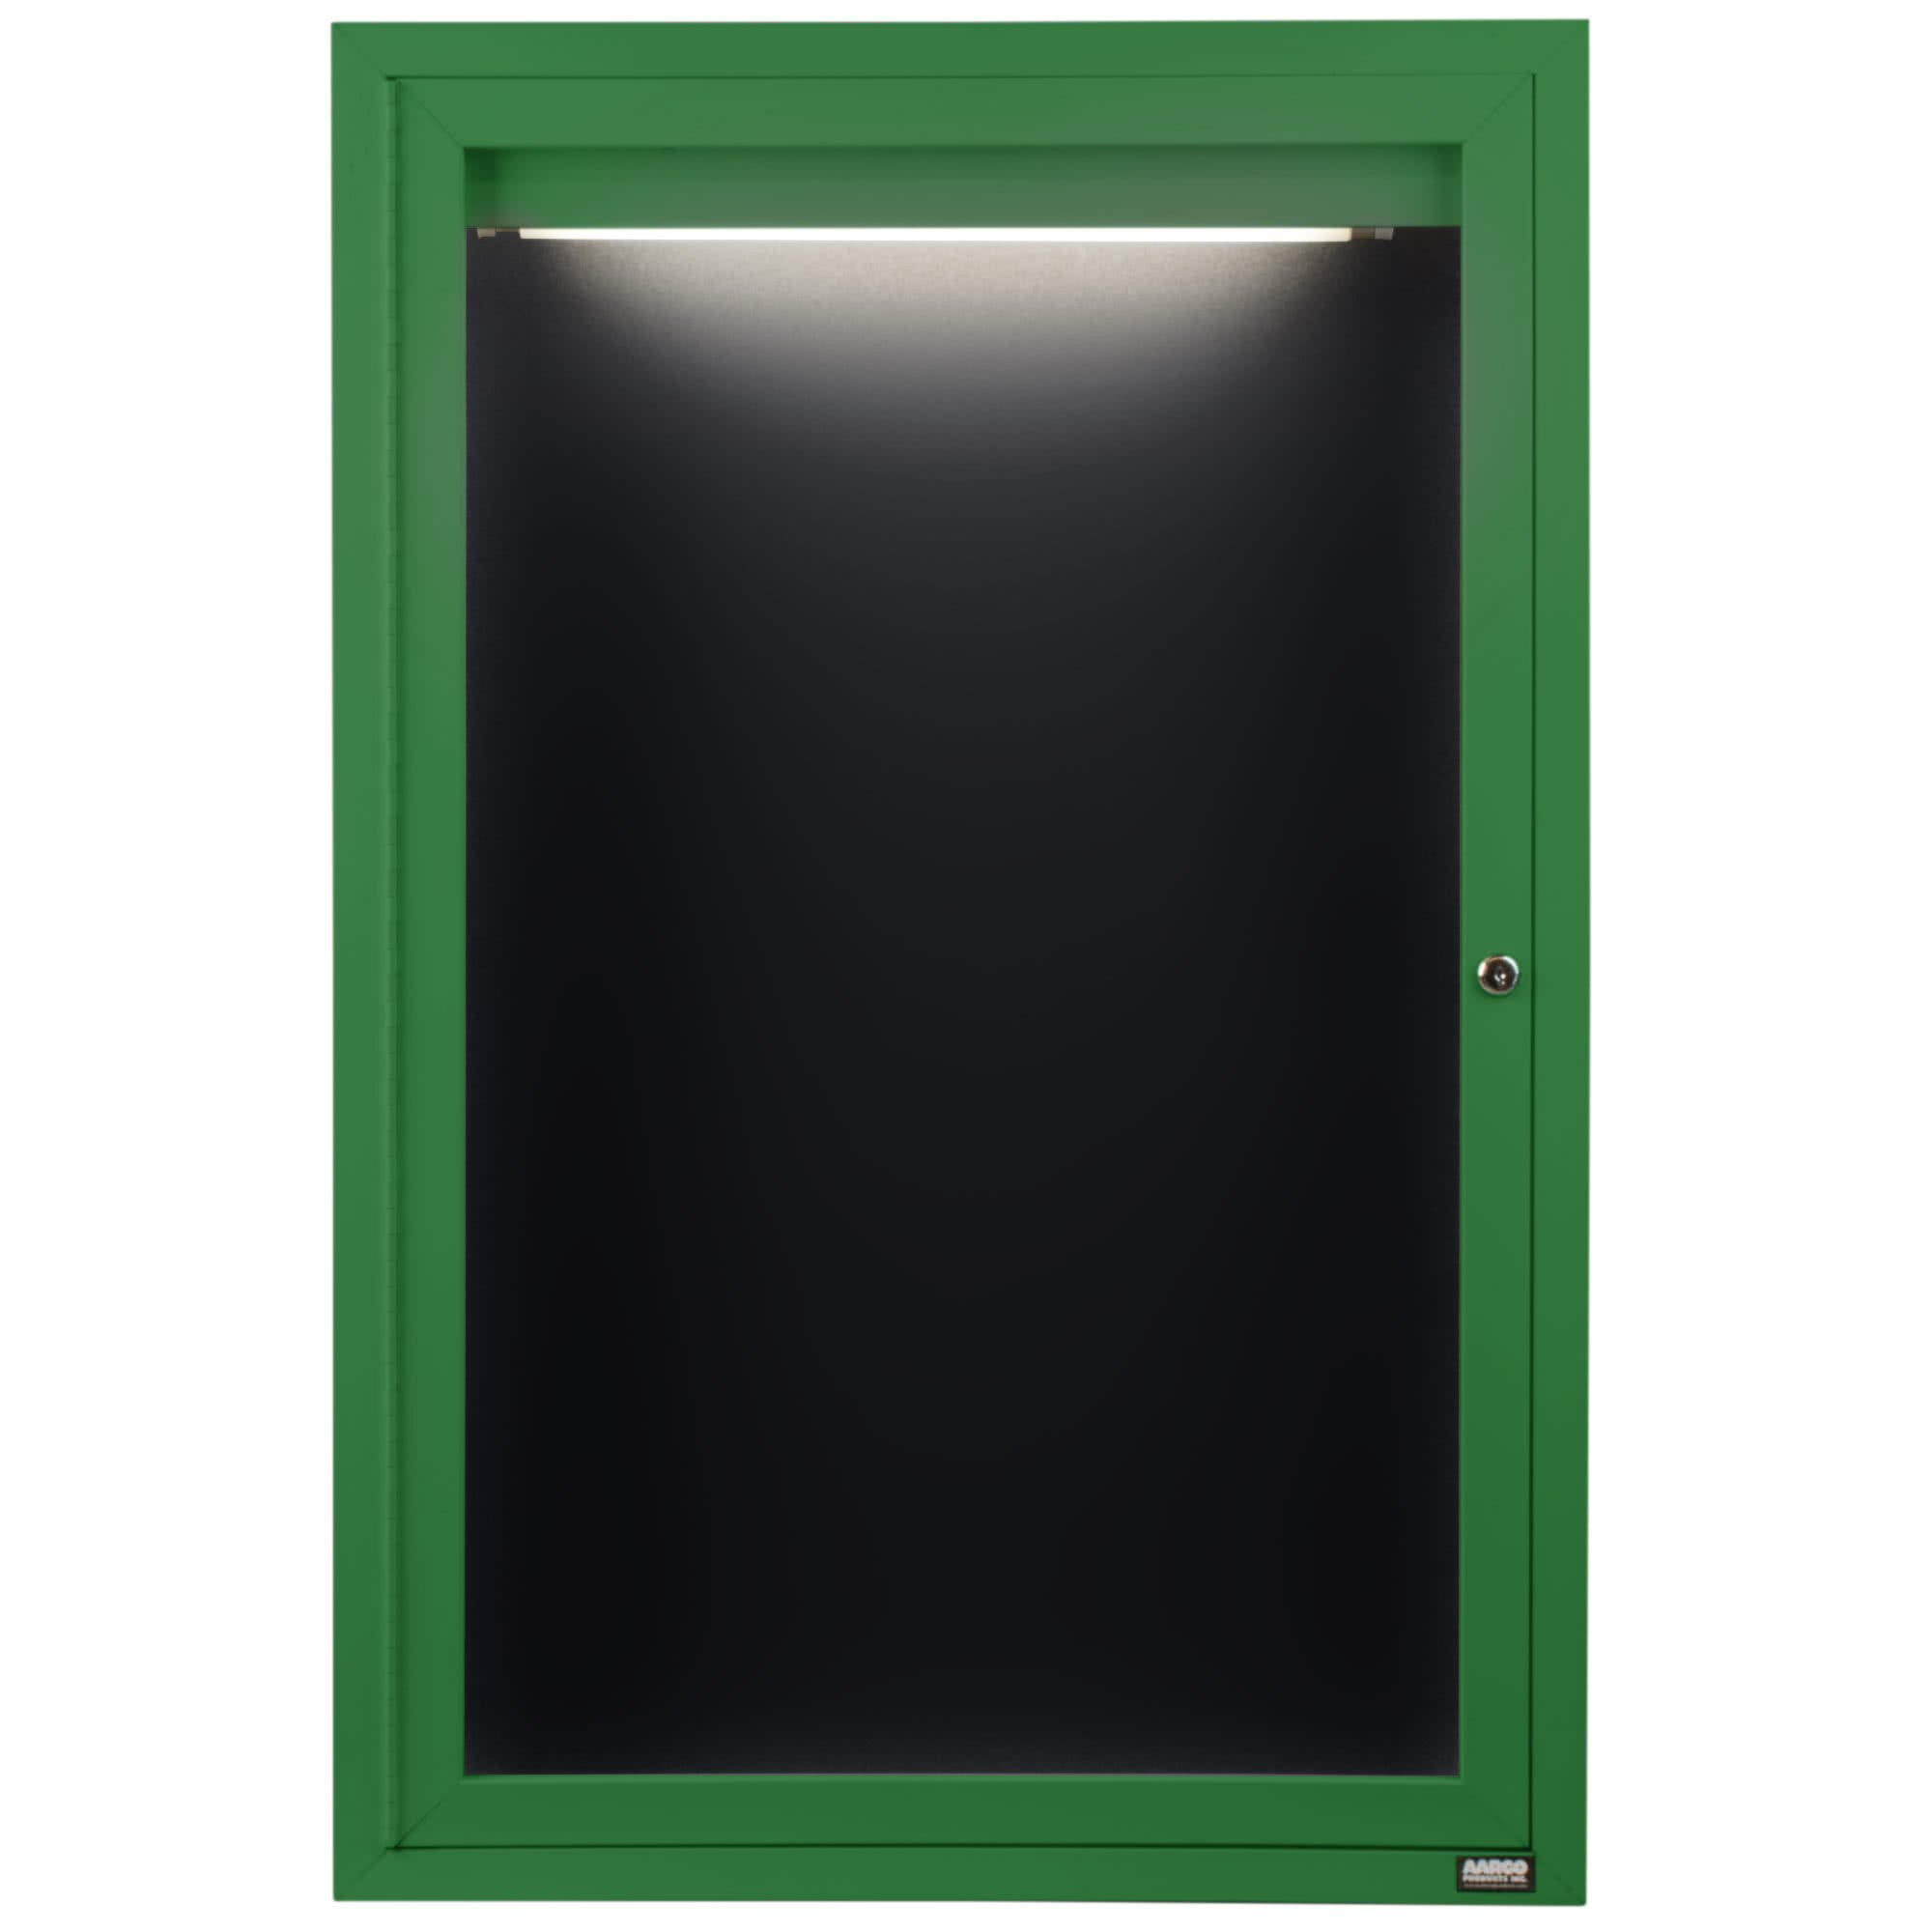 TableTop King ADC3624IG 36'' x 24'' Enclosed Hinged Locking 1 Door Powder Coated Green Aluminum Indoor Lighted Message Center with Black Letter Board